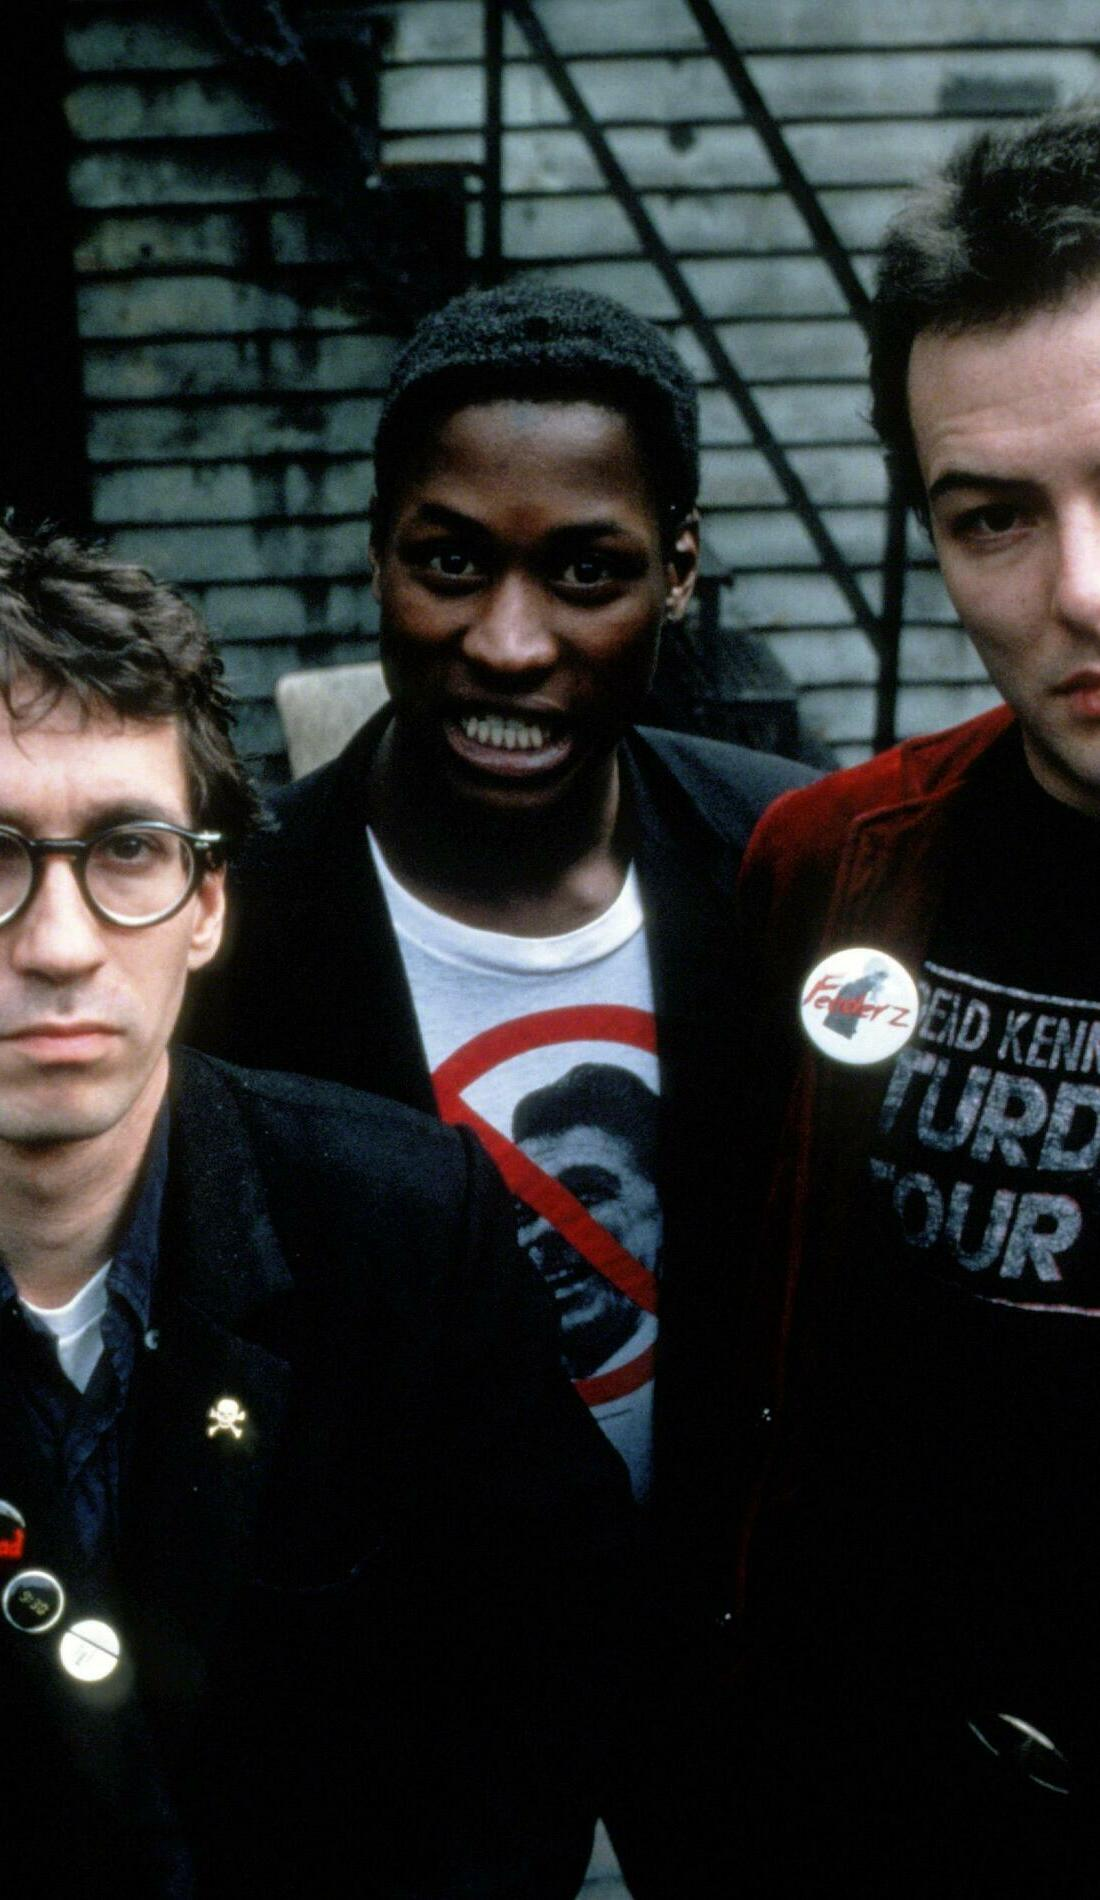 A Dead Kennedys live event